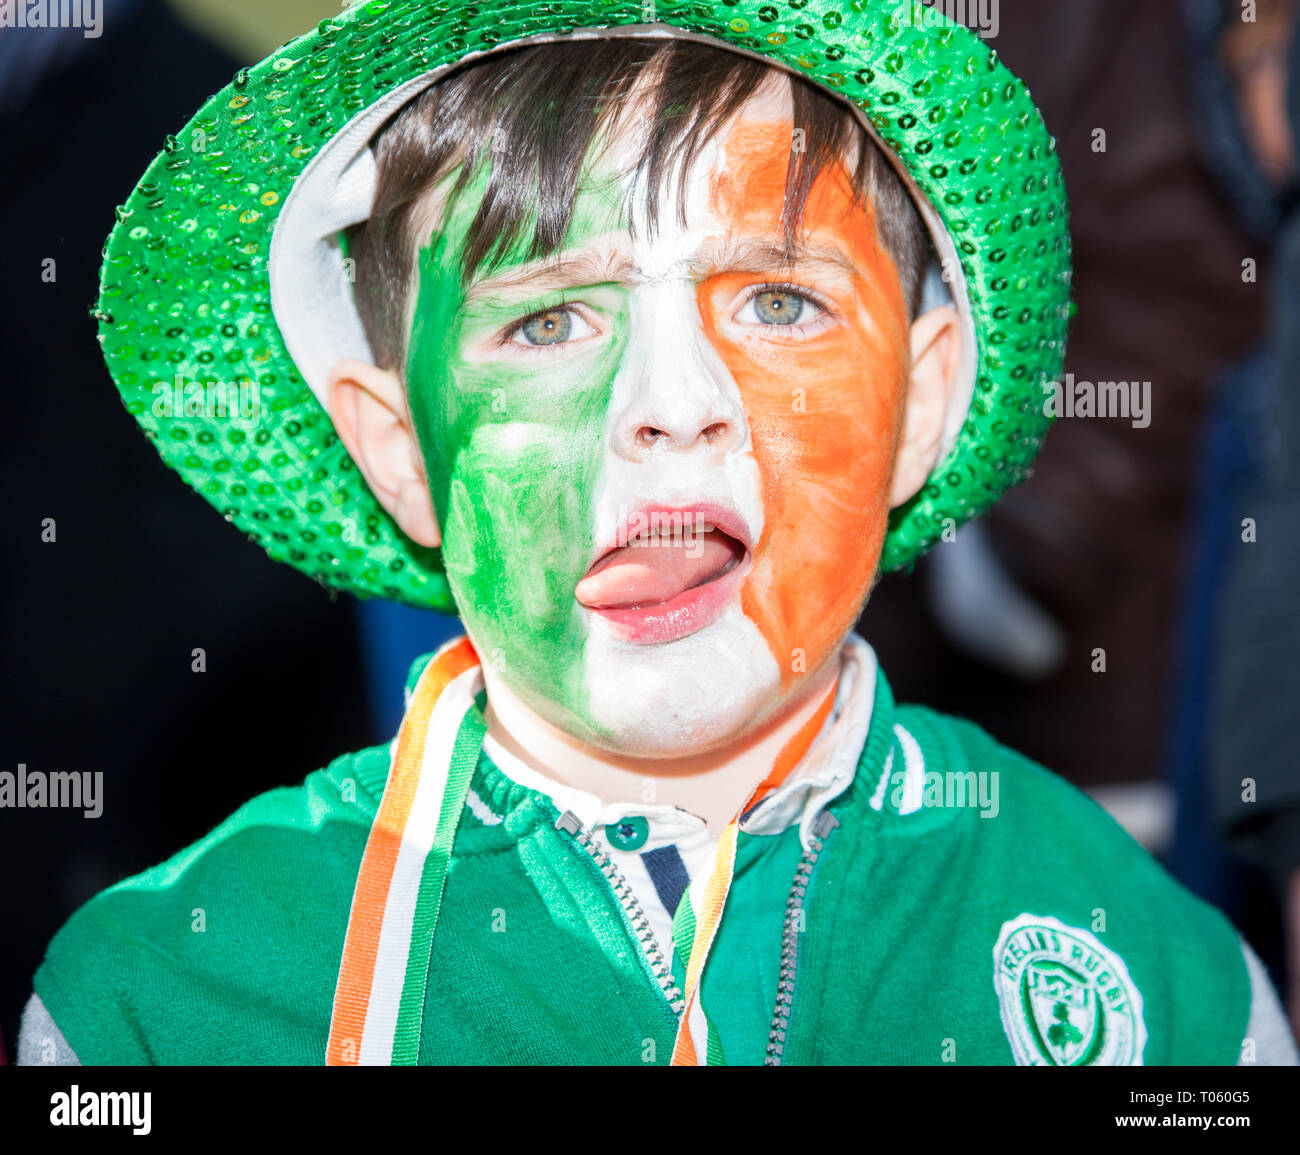 Carrigaline, Cork, Ireland. 17th March, 2019. Oscar Sheehan from Monkstown at the St. Patrick's Day Parade in Carrigaline Co. Cork, Ireland. Credit: David Creedon/Alamy Live News - Stock Image